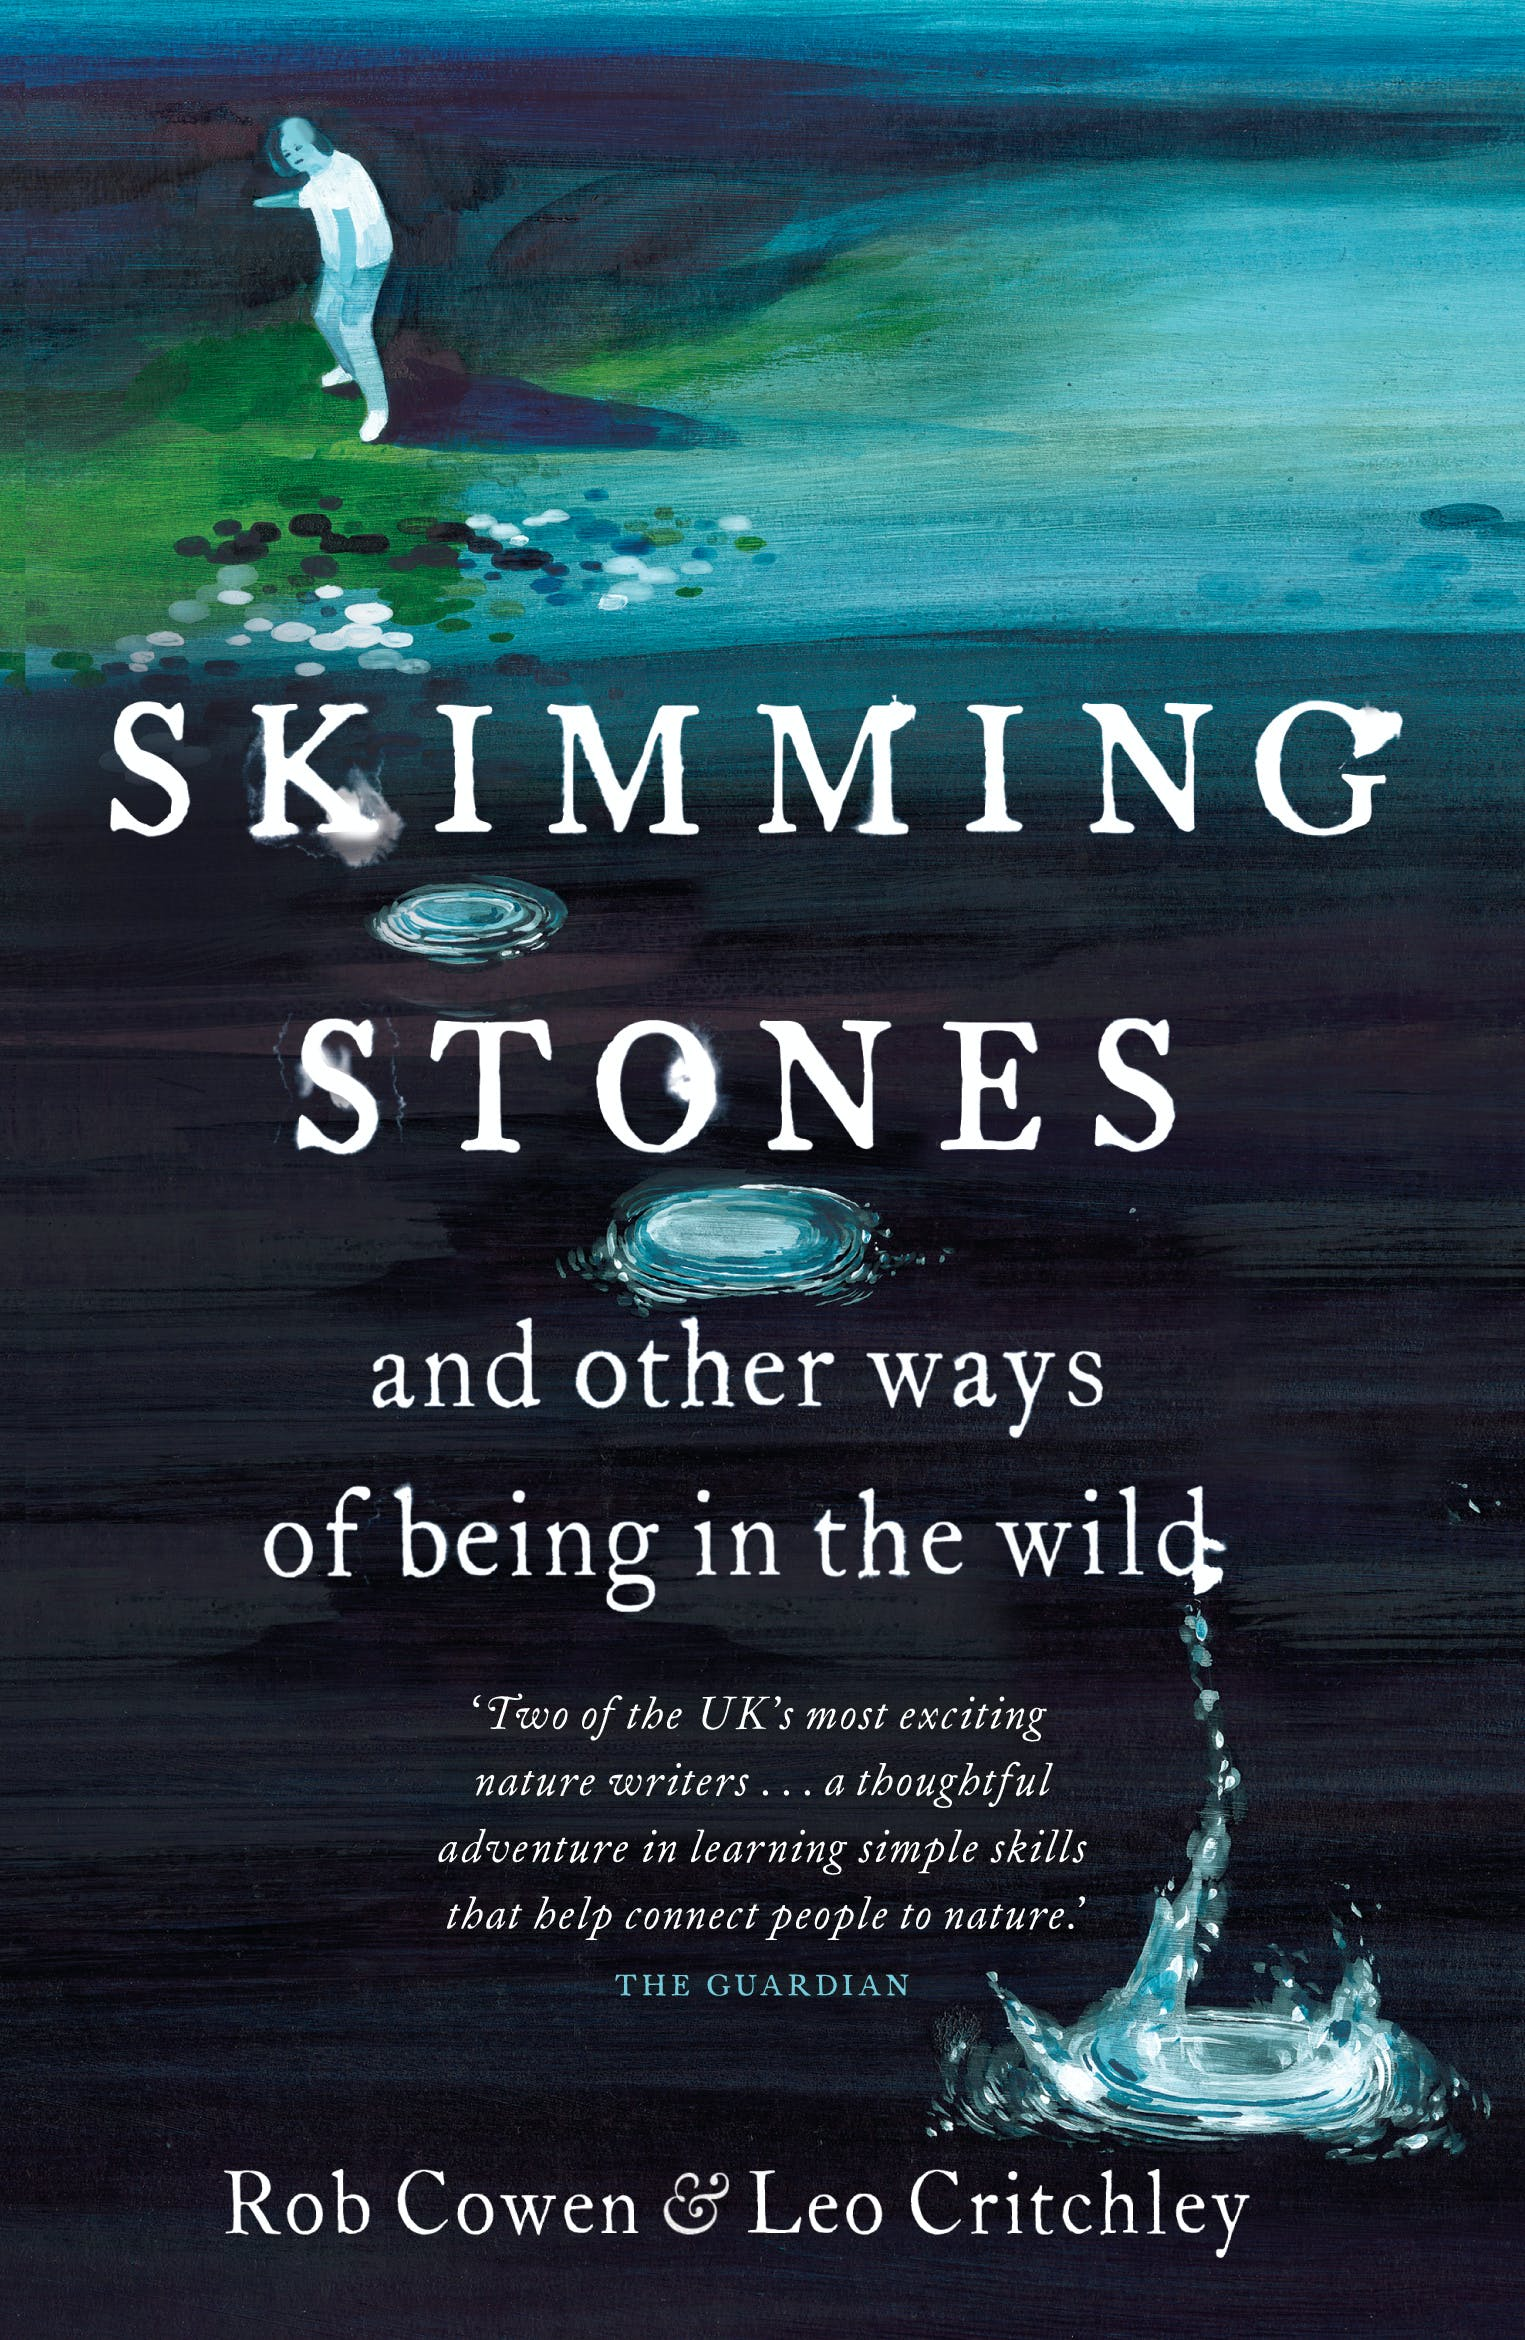 Skimming Stones: and other ways of being in the wild by Rob